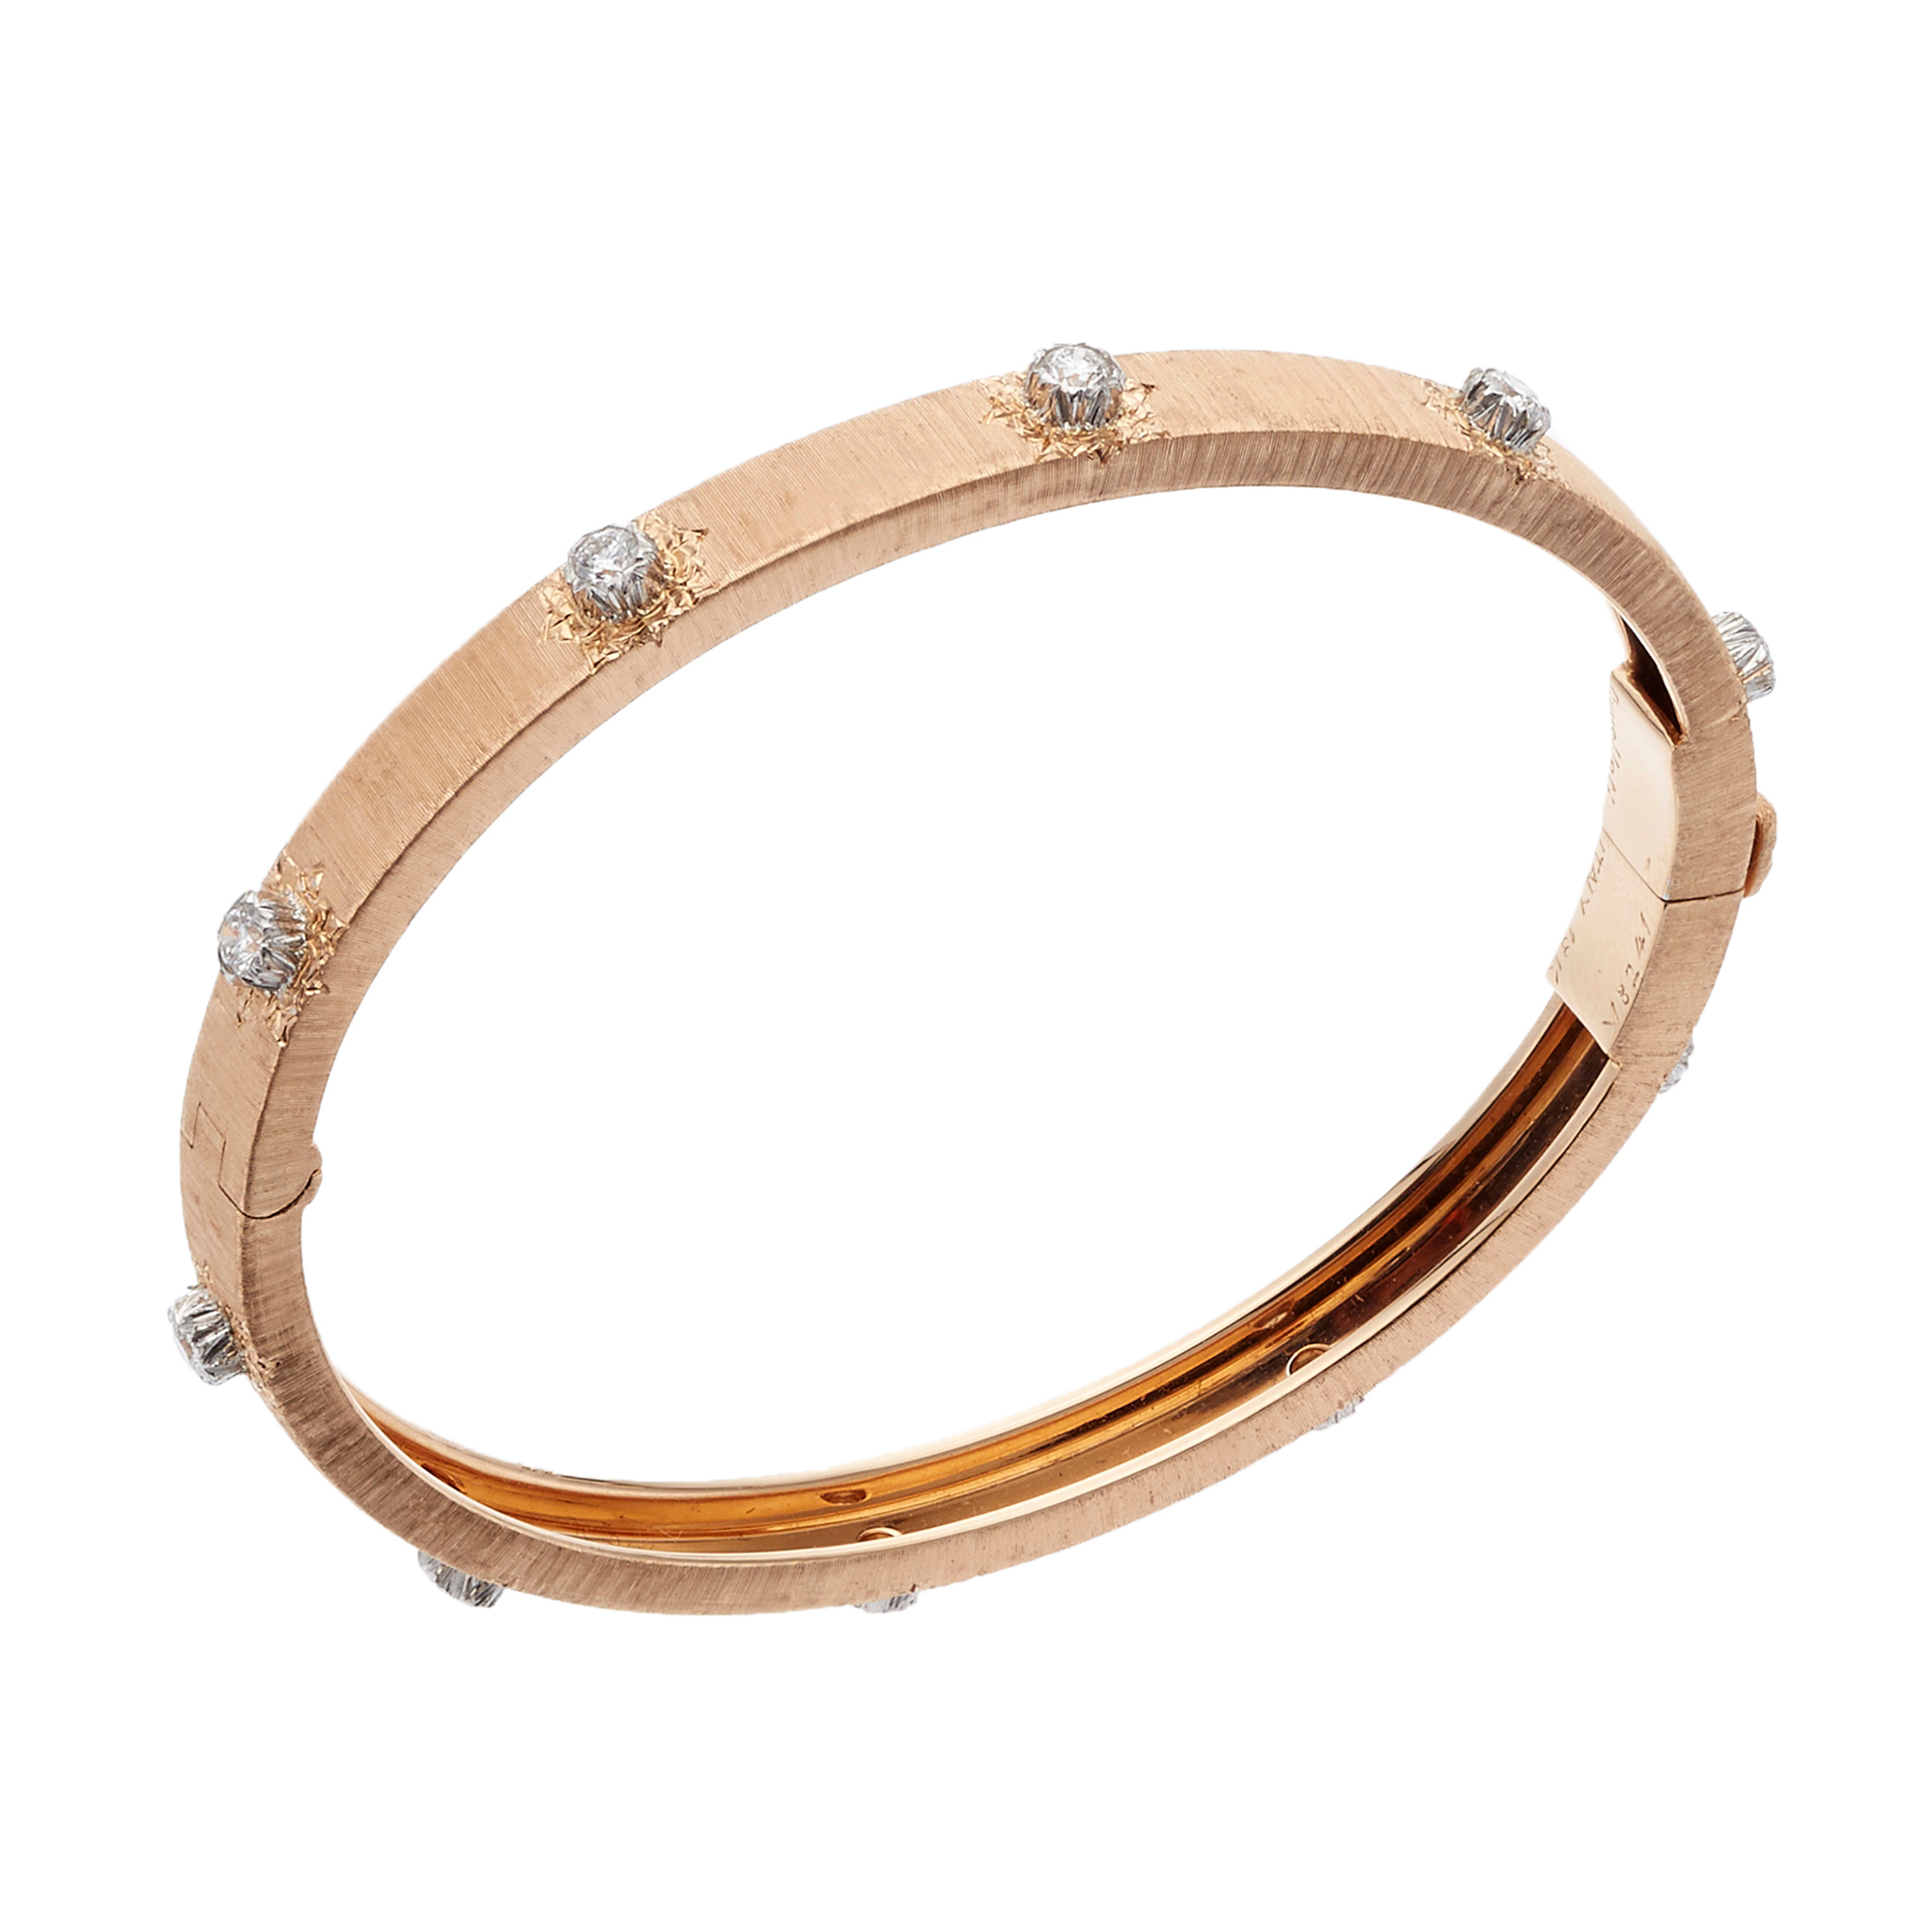 Buccellati Macri Pink Gold, White Gold and Diamond Hinged Bangle